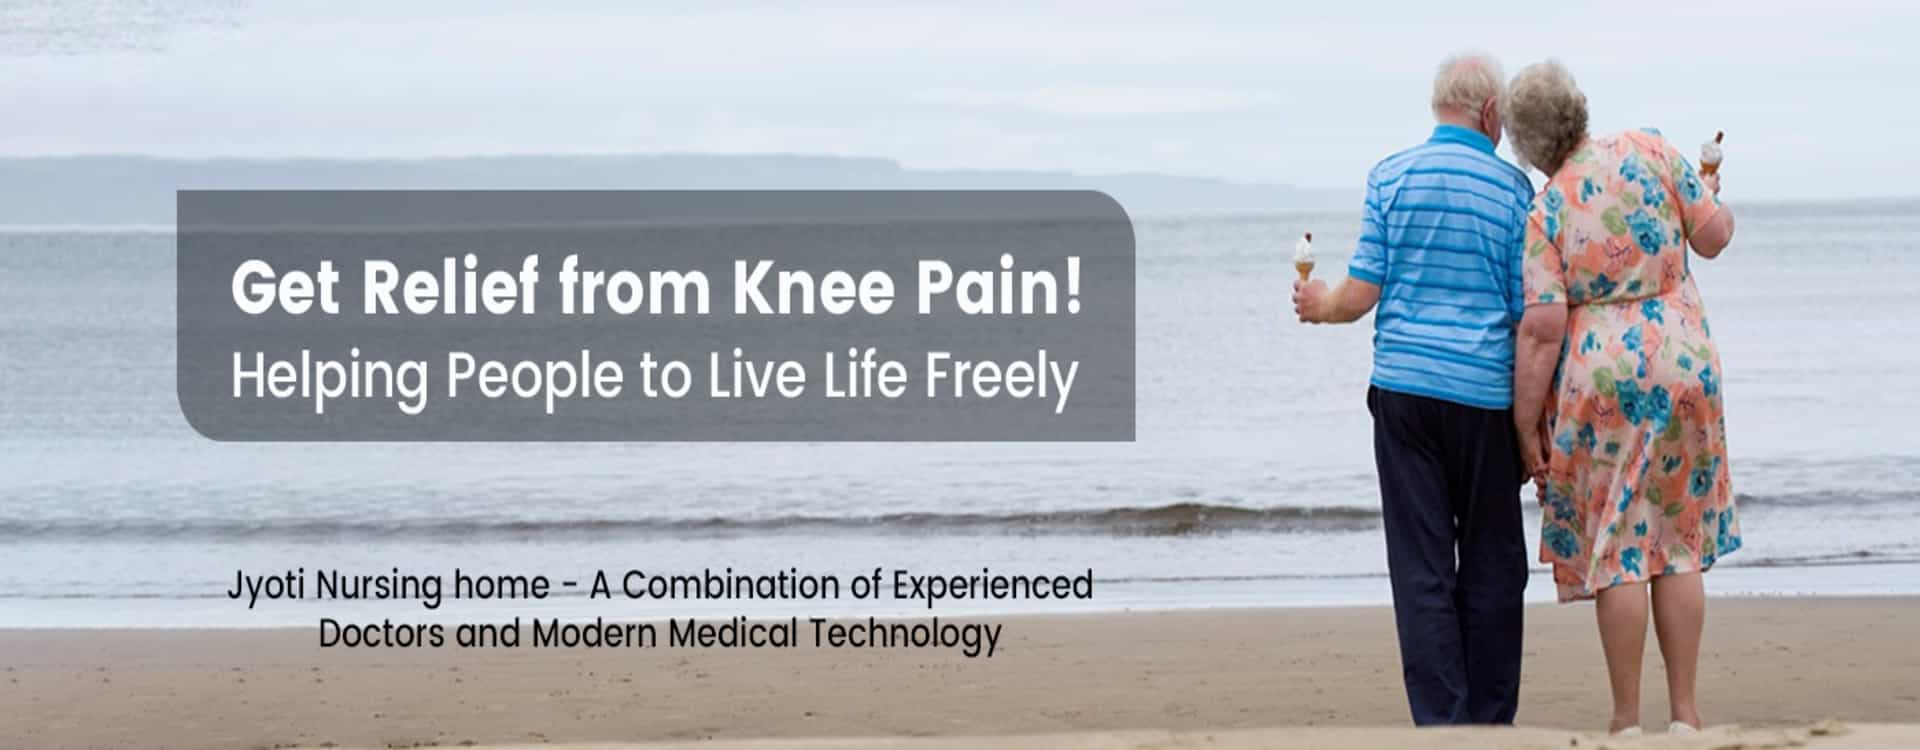 Get Relief from Knee Pain